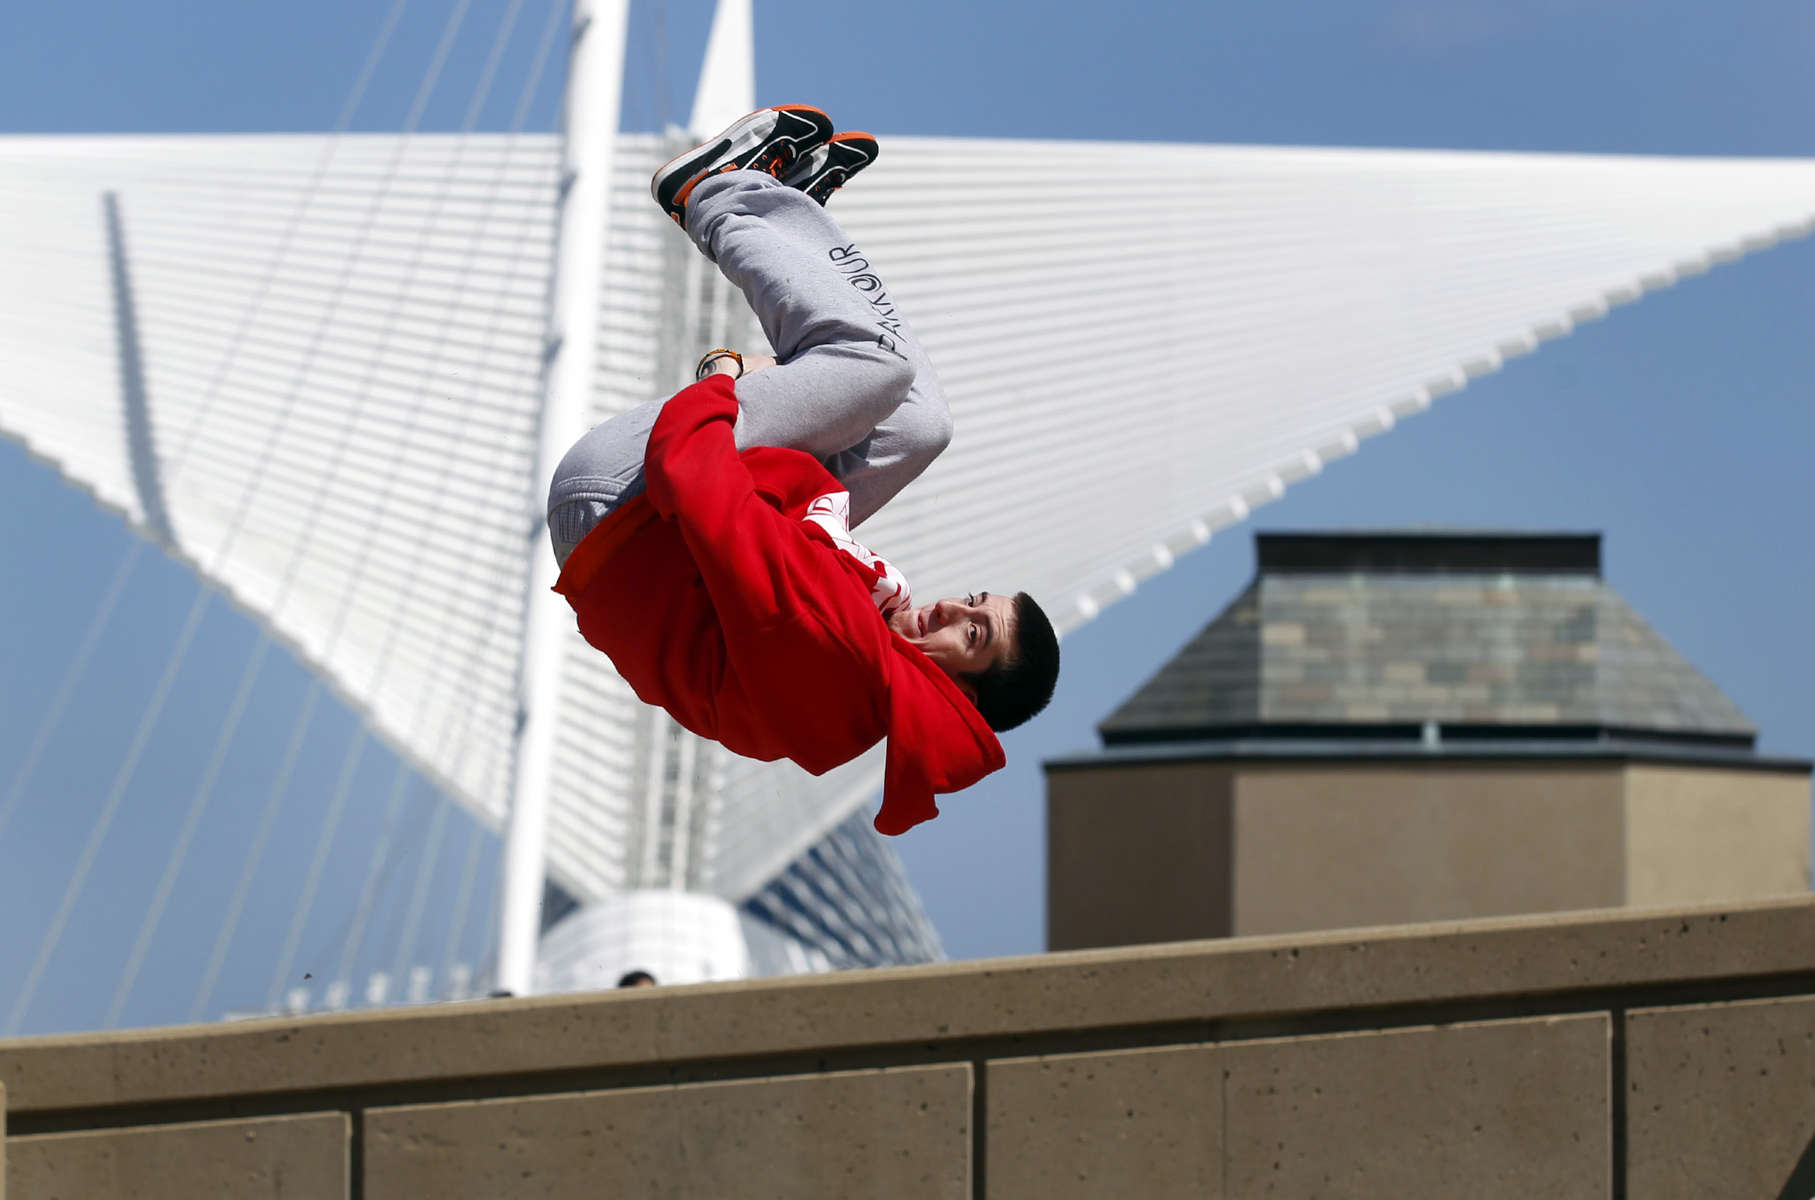 Parkour practitioners see the entire world as a playground. They flip, leap and fly over obstacles, finding joy in the challenge and moving without rules. Wisconsin is home to a growing group of traceurs.